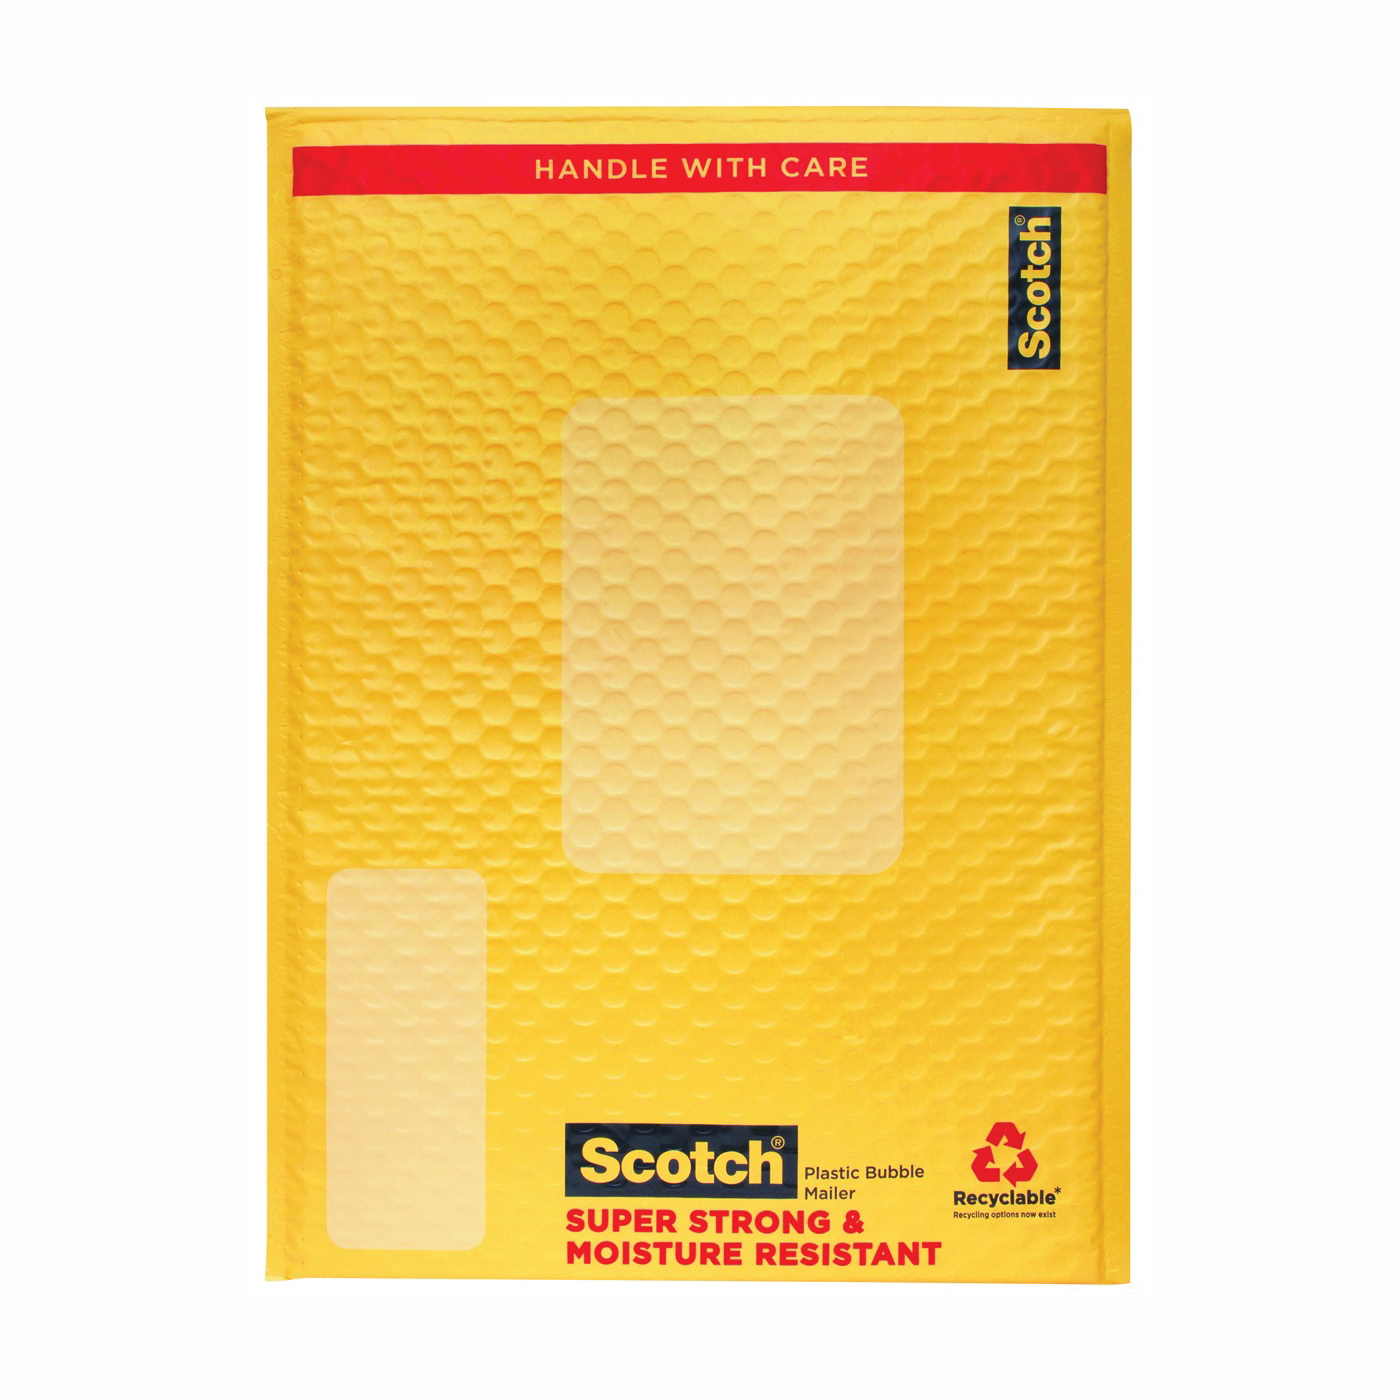 Picture of Scotch 8915 Smart Mailer, 10-1/2 x 15 in, Yellow, Self-Seal Closure